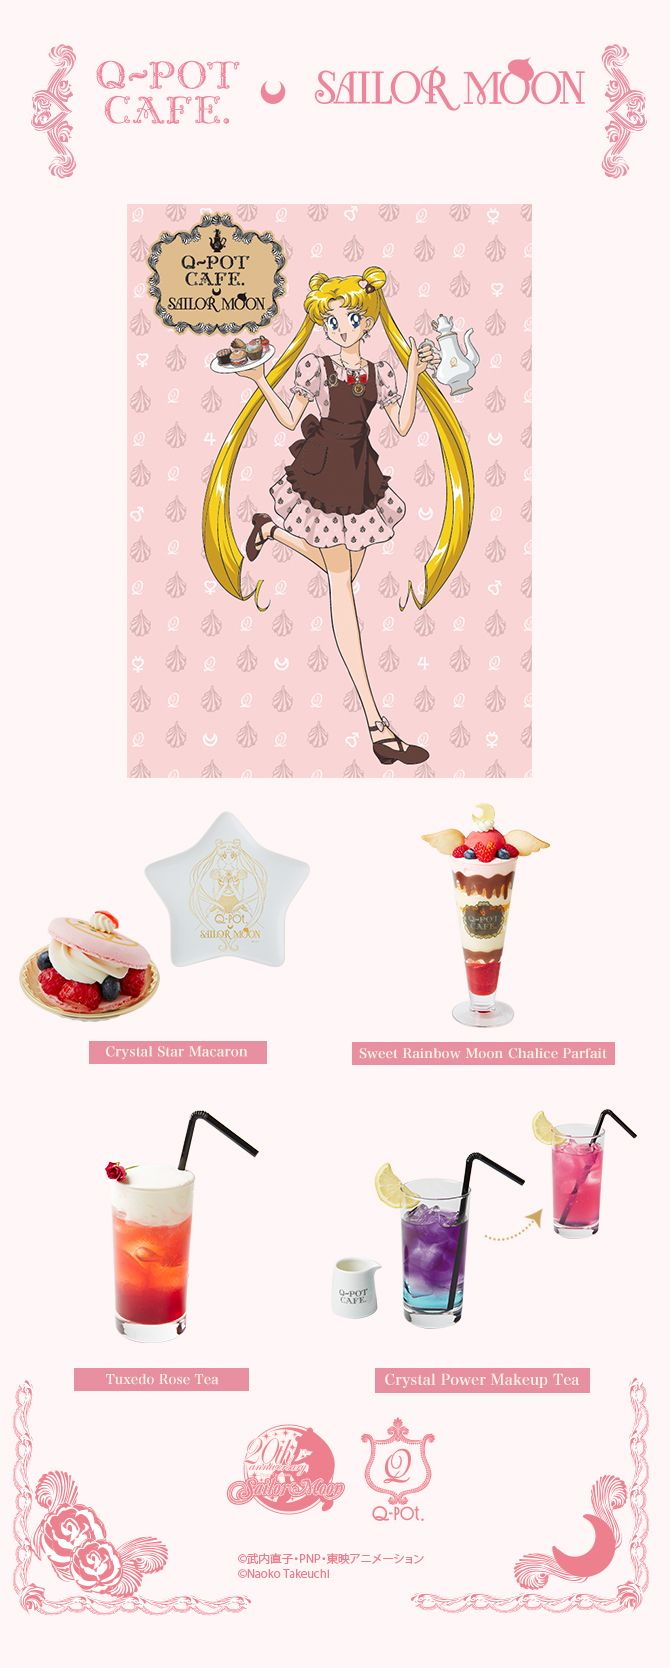 """sailor moon"" ""sailor moon merchandise"" ""sailor moon toys"" ""q-pot"" kawaii cafe shop macaron chocolate cake jewelry charm"